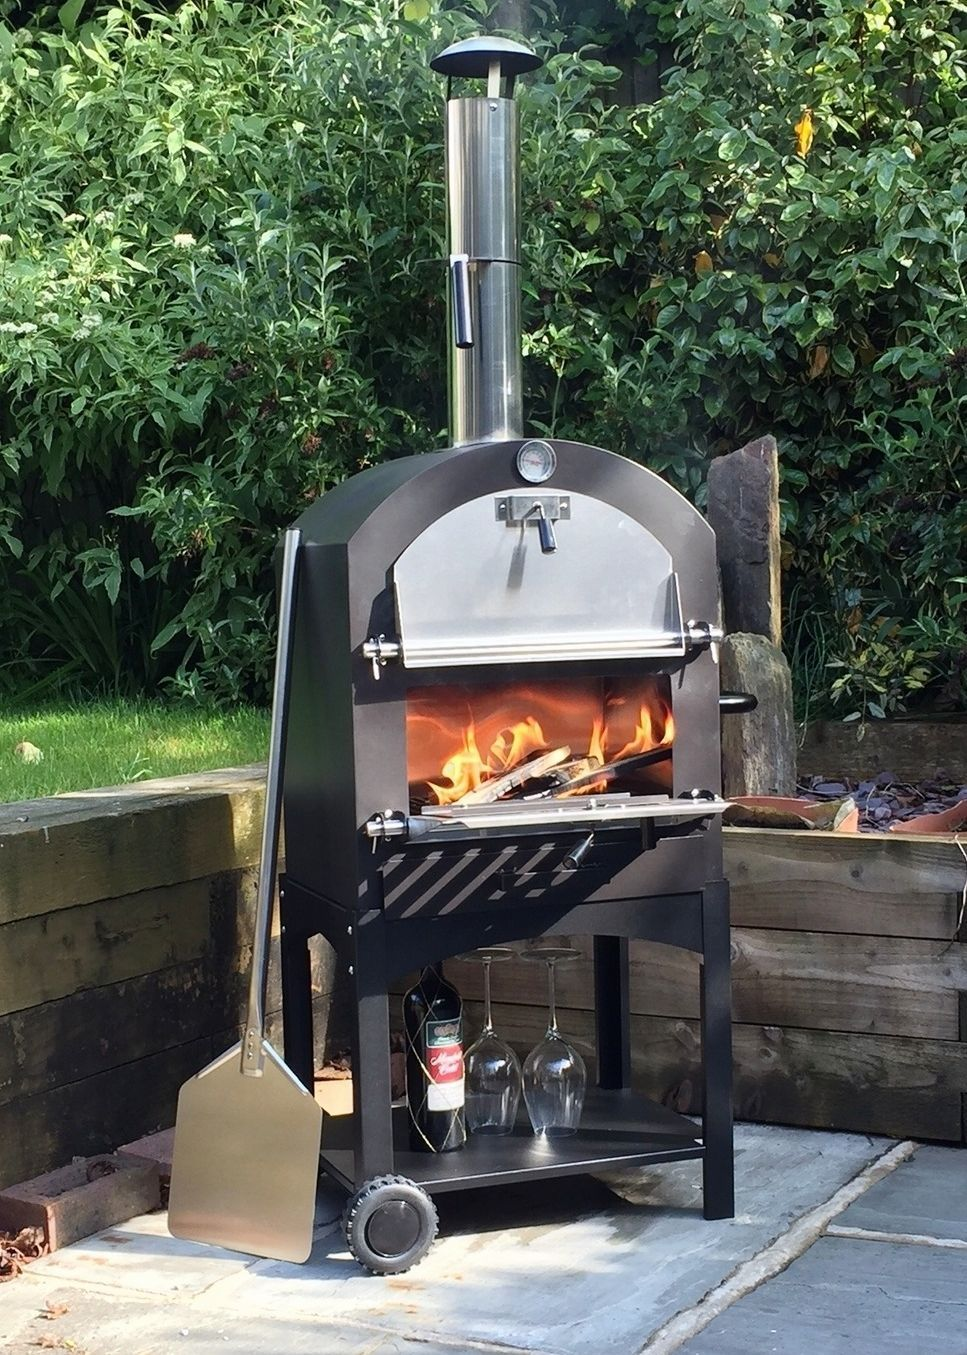 cove outdoor pizza oven bbq smoker stainless steel oven